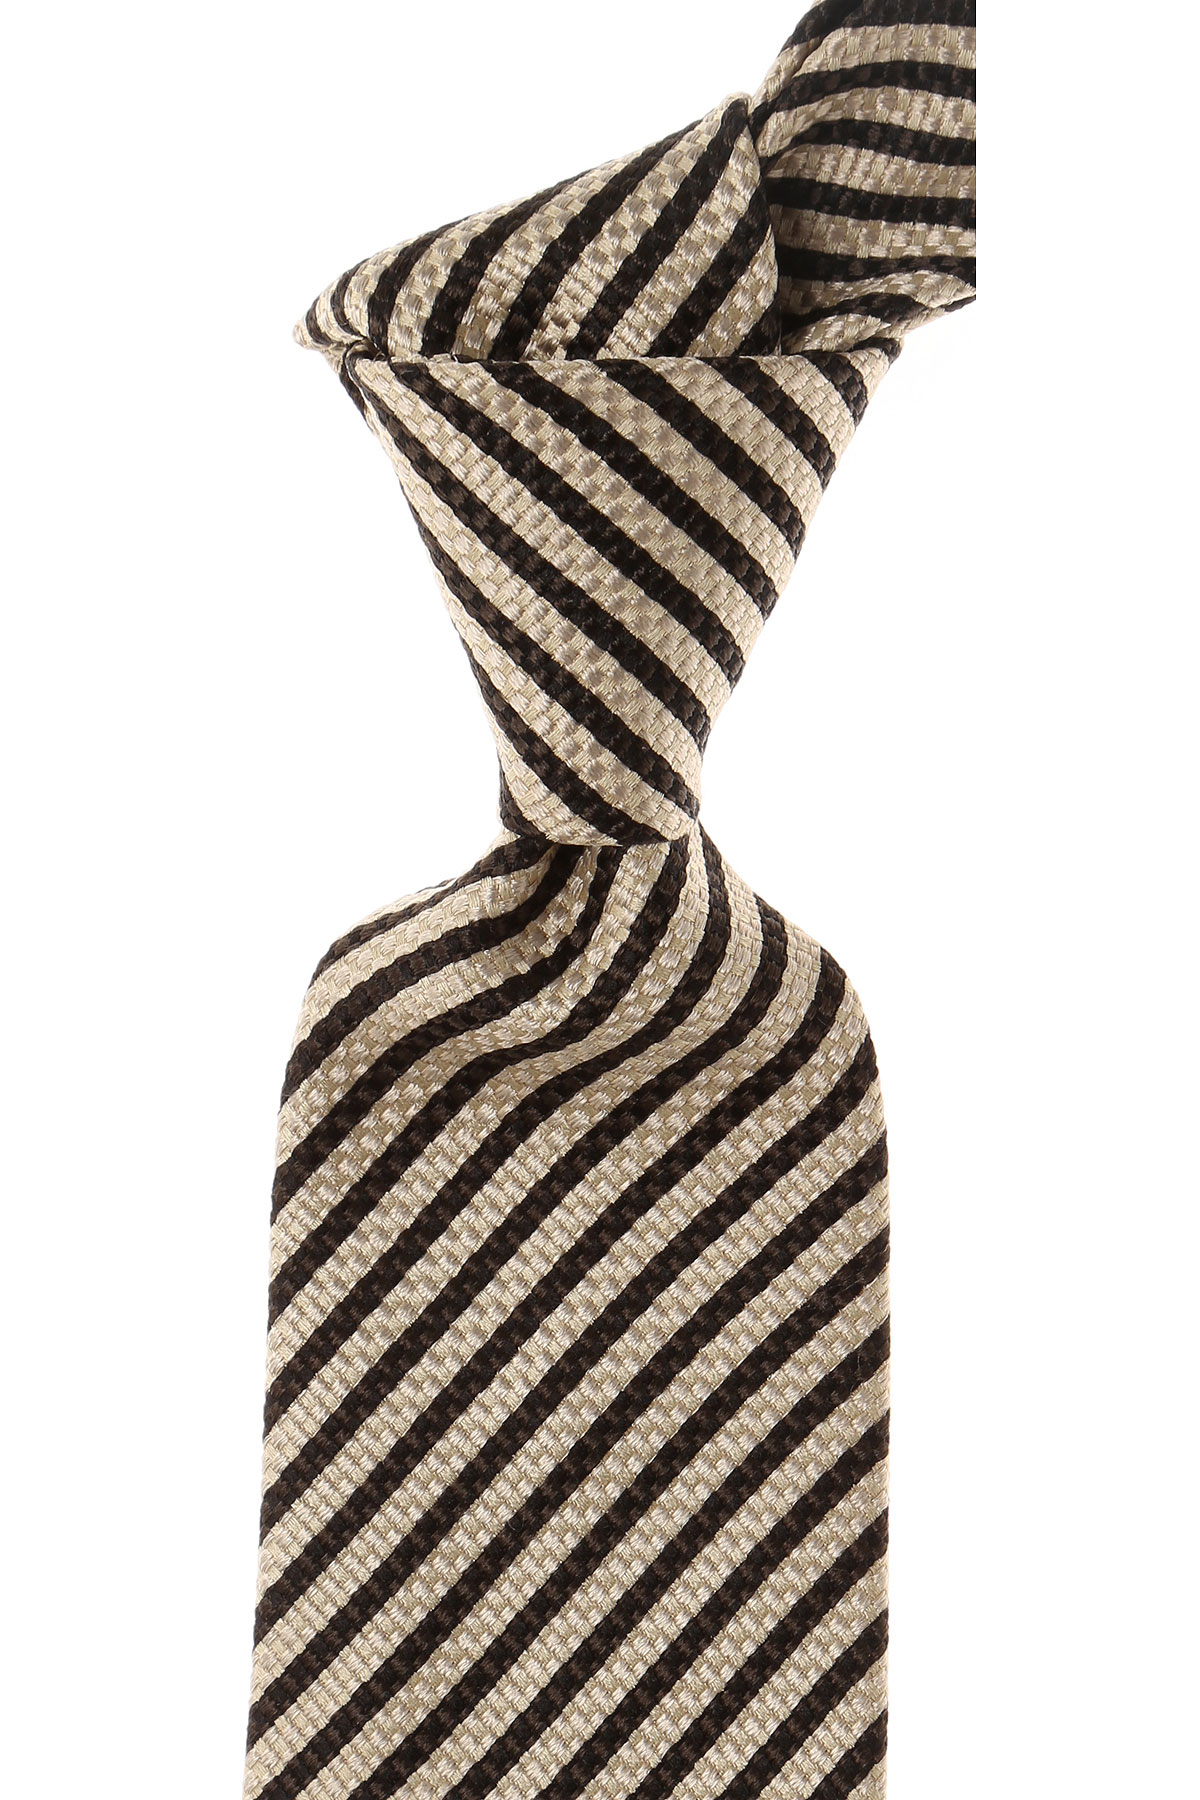 Giorgio_Armani_Ties_On_Sale_Ebony_Silk_2019